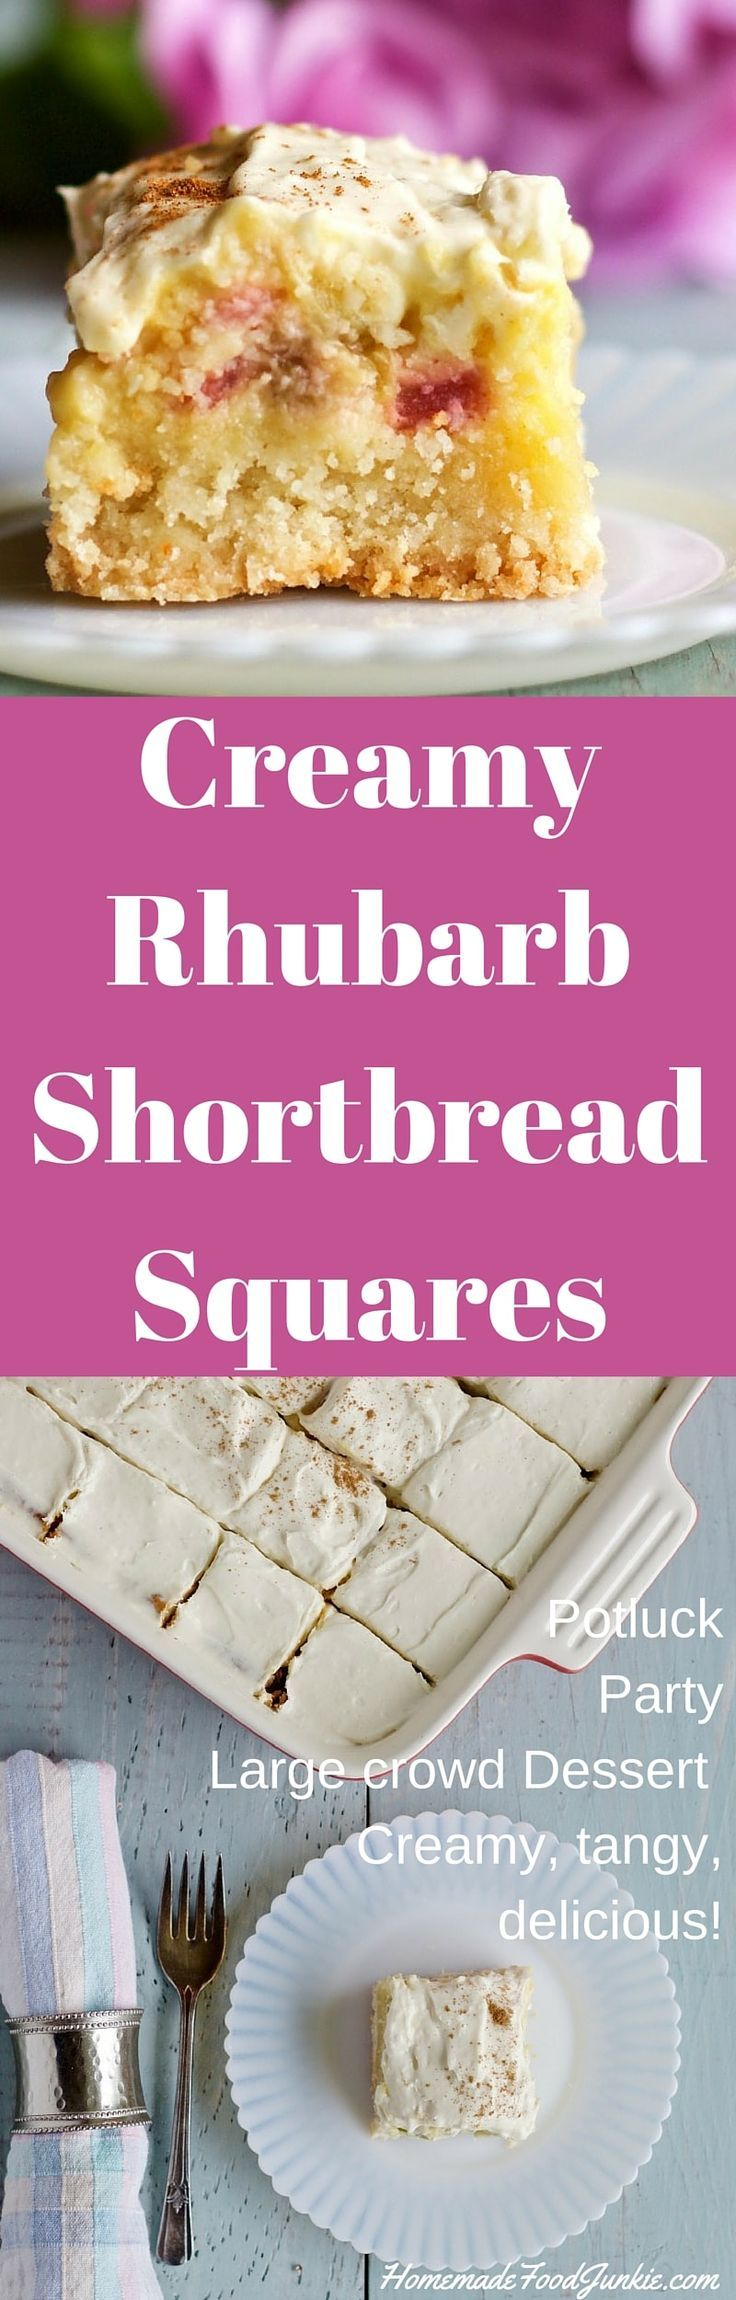 Creamy Rhubarb Shortbread Squares. Potluck, party, large crowd dessert. Watch it vanish off the plates! http://HomemadeFoodJunkie.com